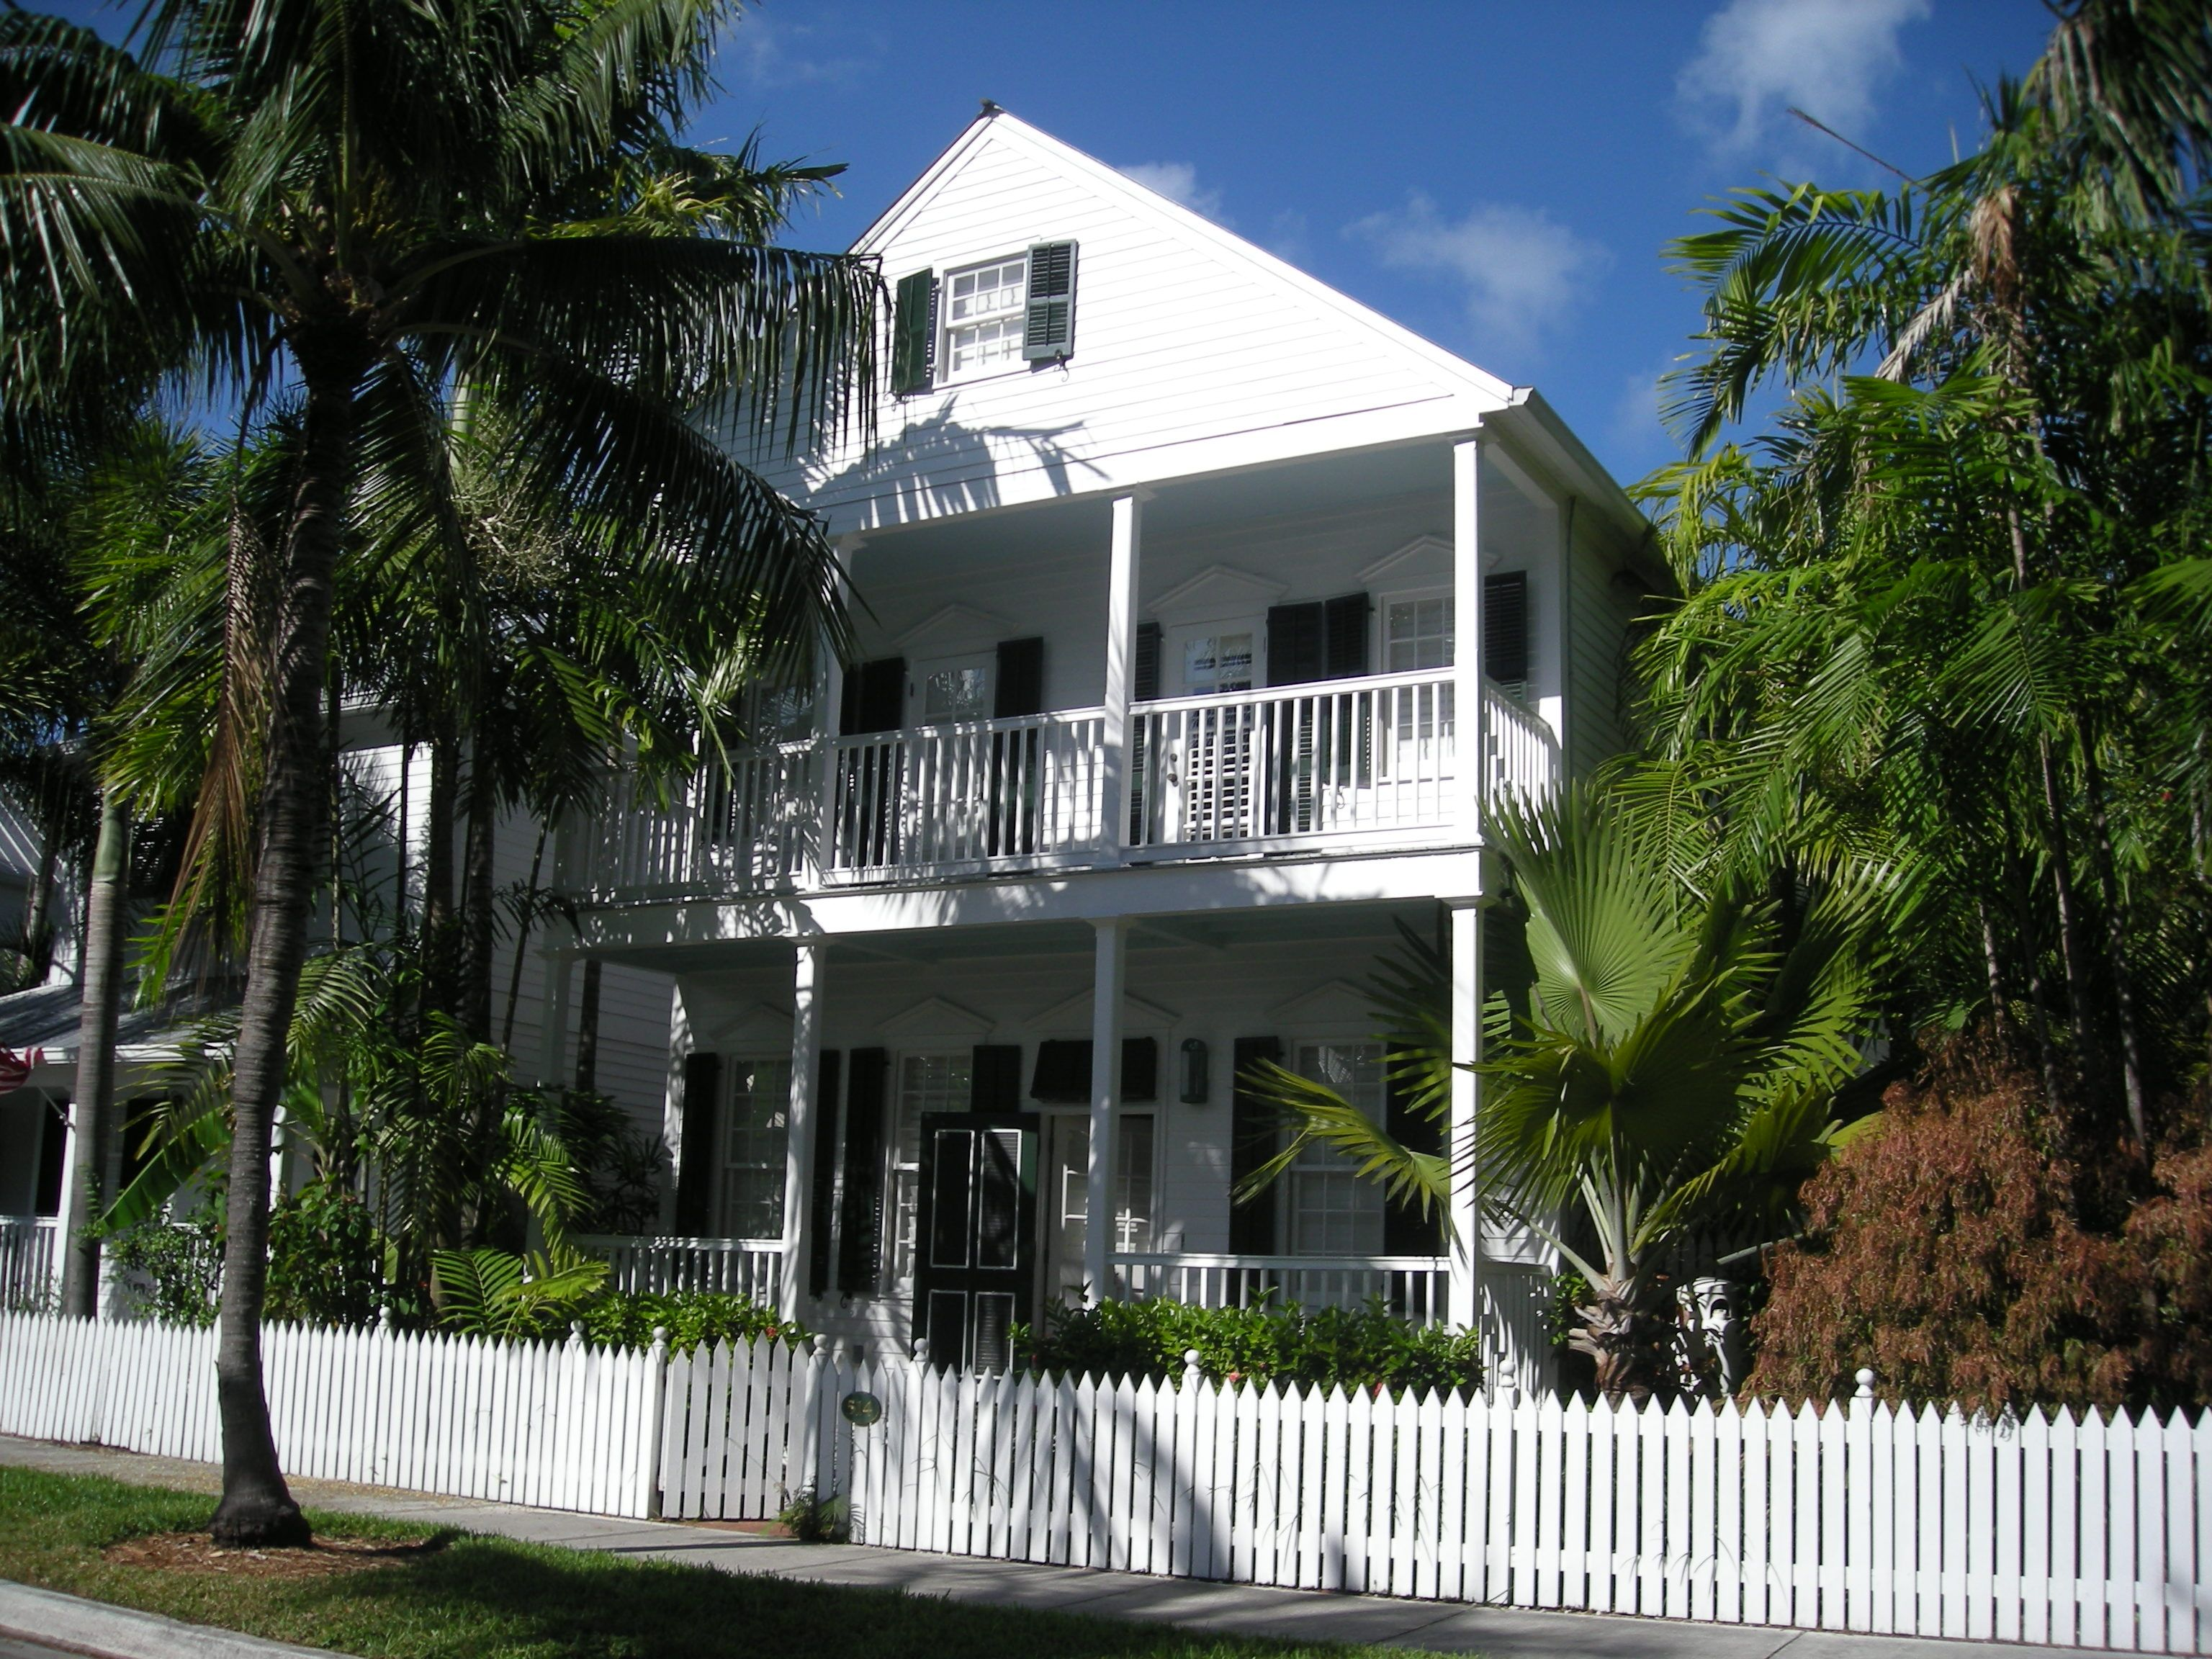 House on Emma Street, in Truman Annex.  Love. #keywest